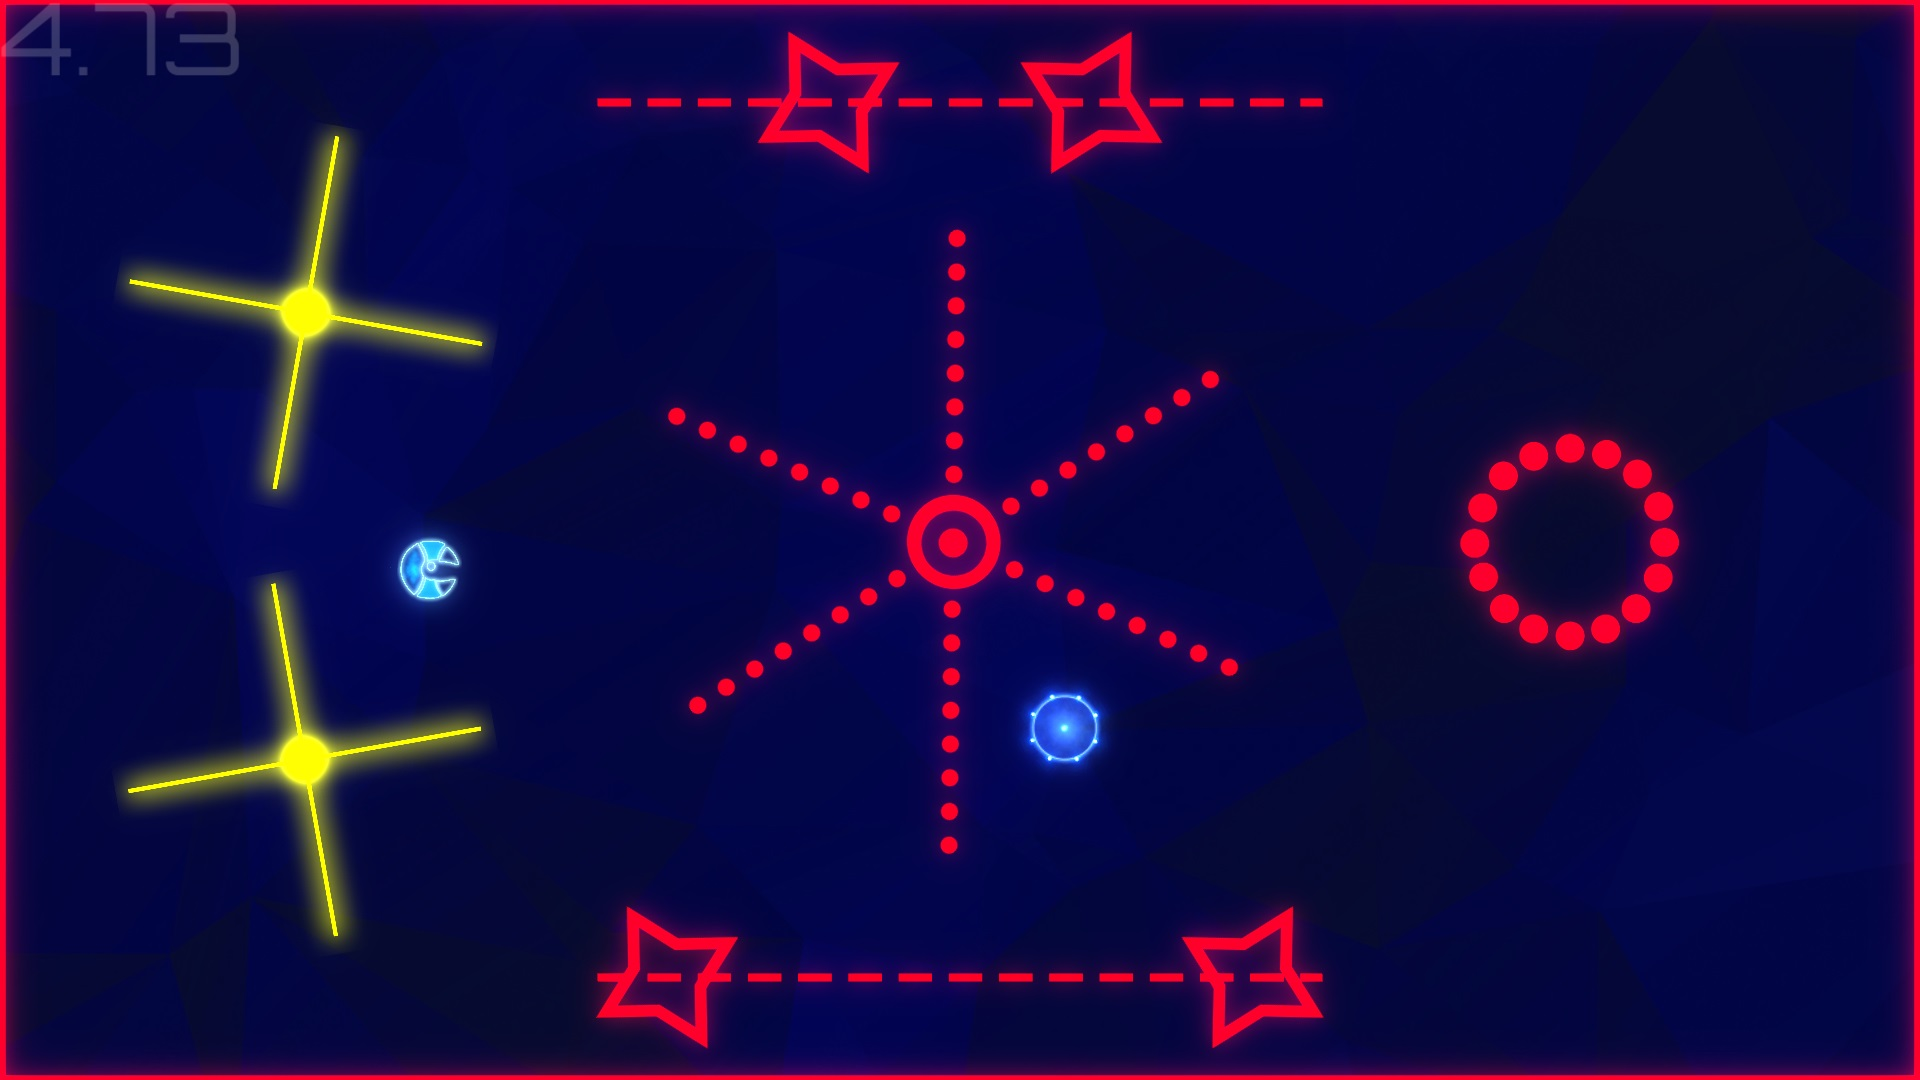 Neon Prism screenshot